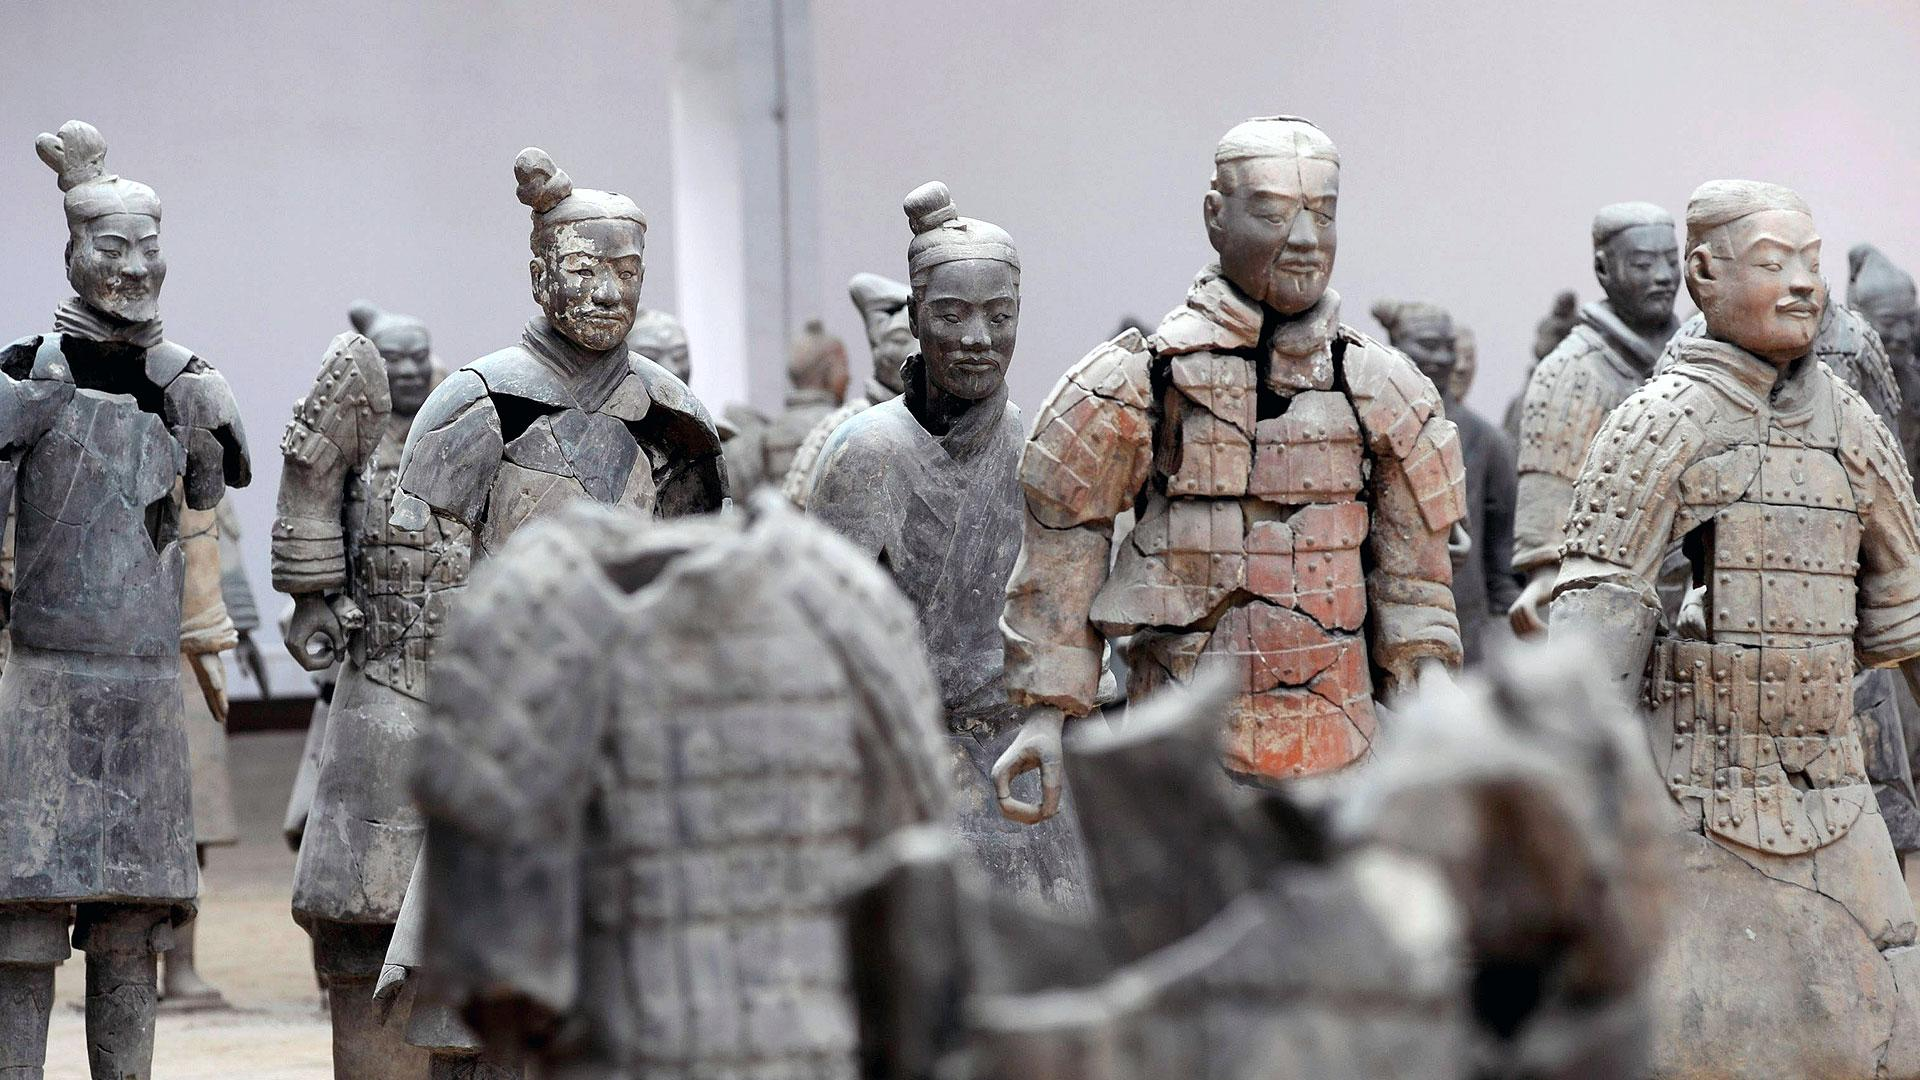 More from China's Terracotta Warriors (3)